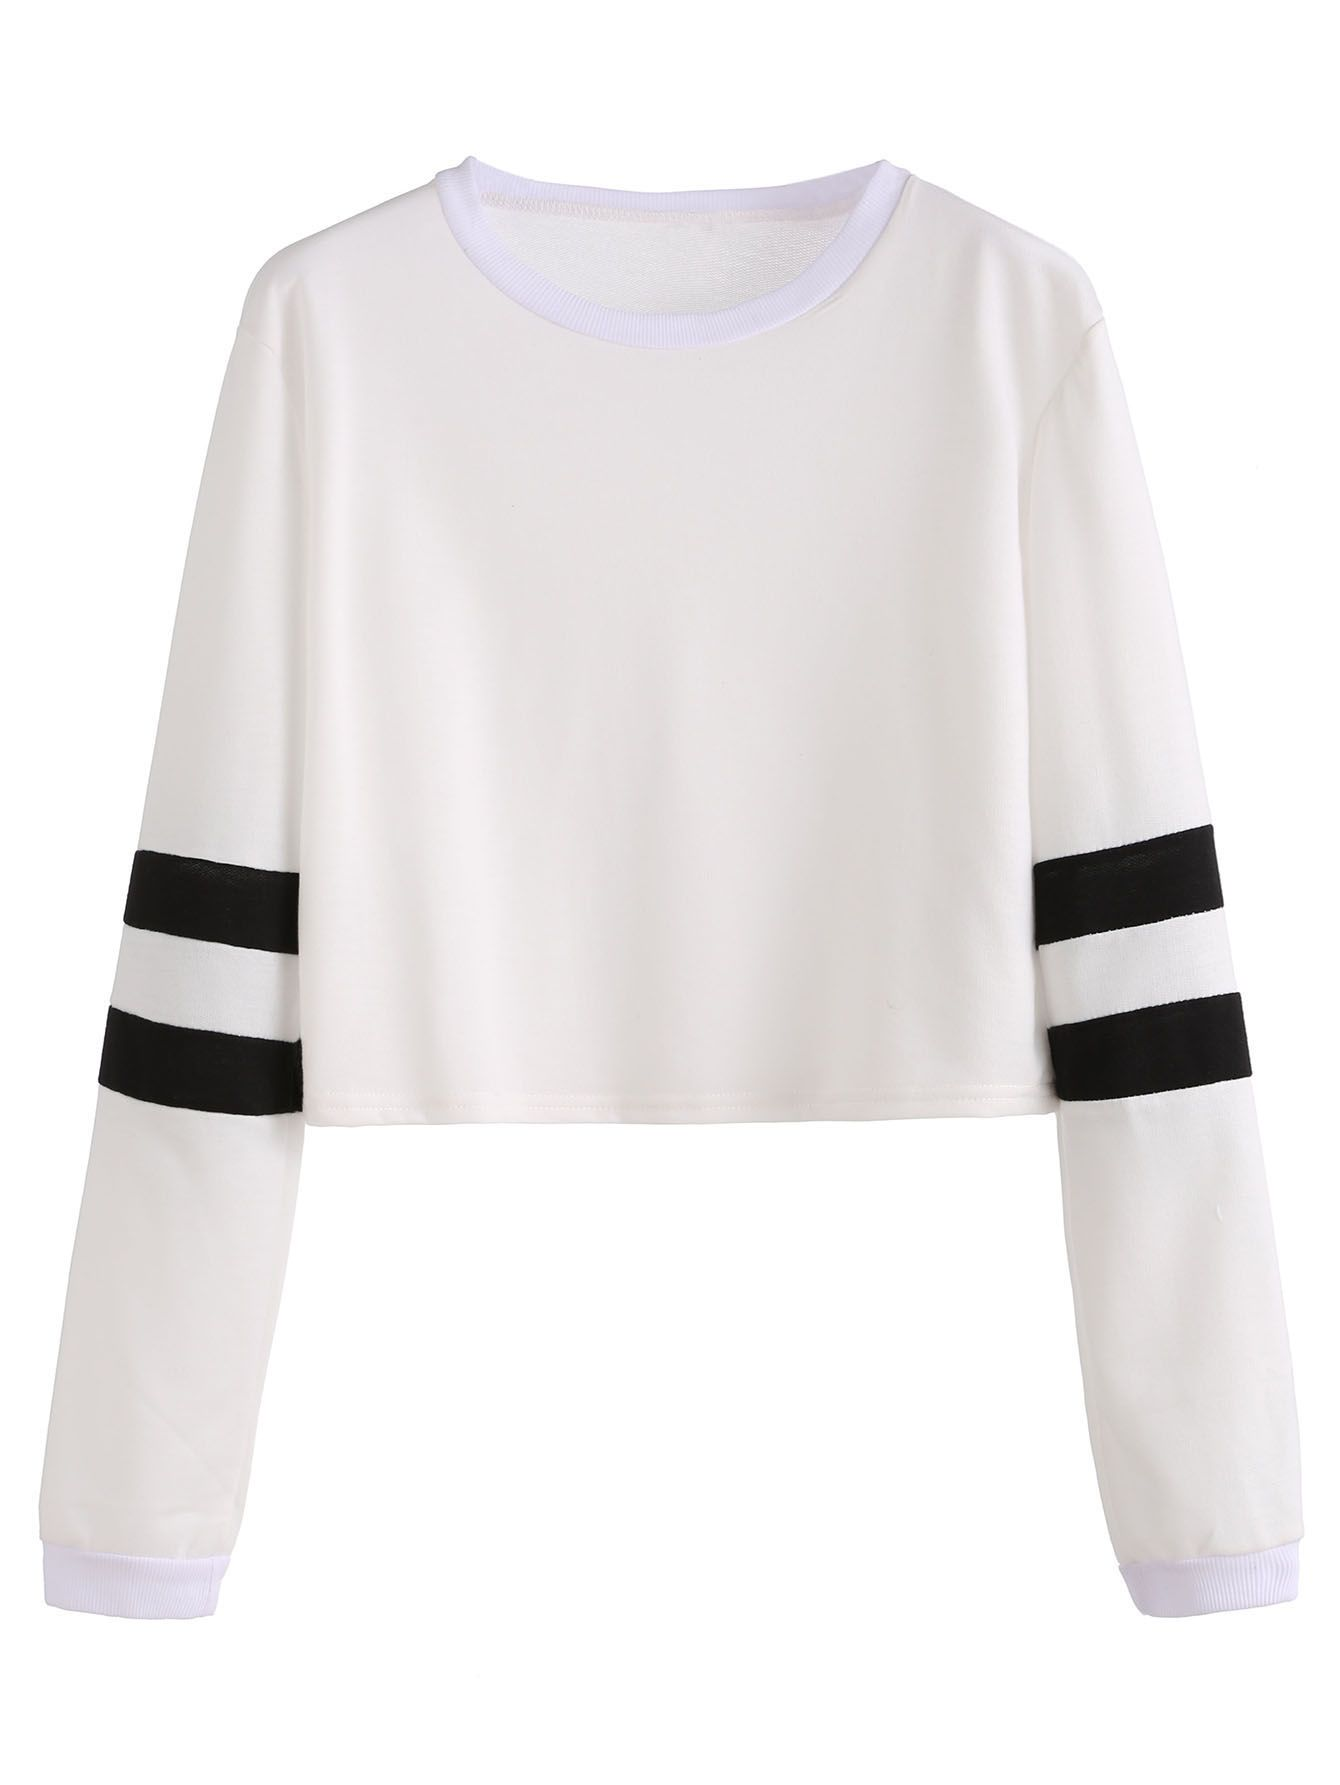 2b2de464edfa White Varsity Striped Sleeve Crop T-shirt